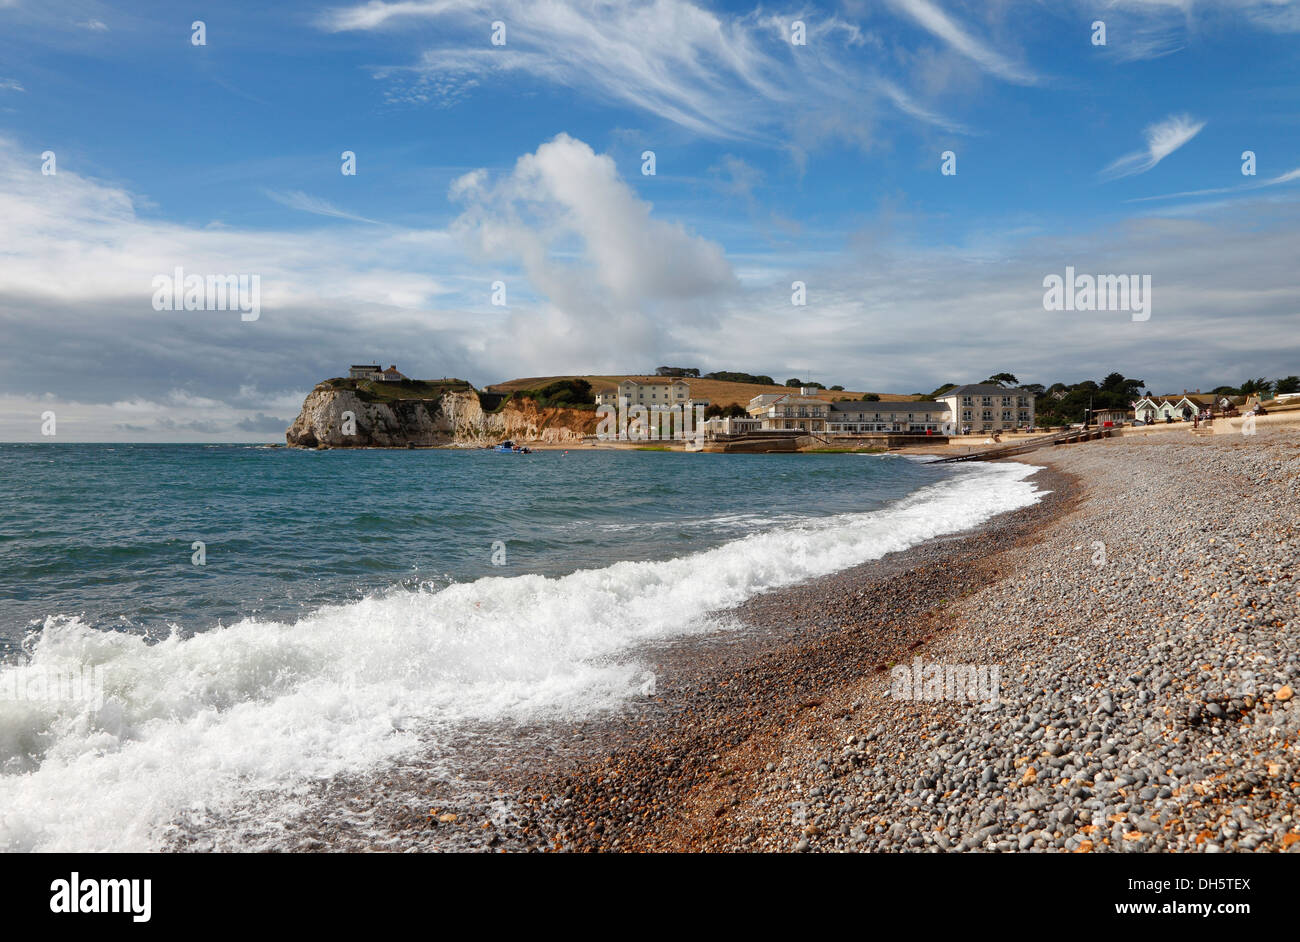 waves-breaking-on-beach-freshwater-bay-isle-of-wight-hampshire-england-DH5TEX.jpg